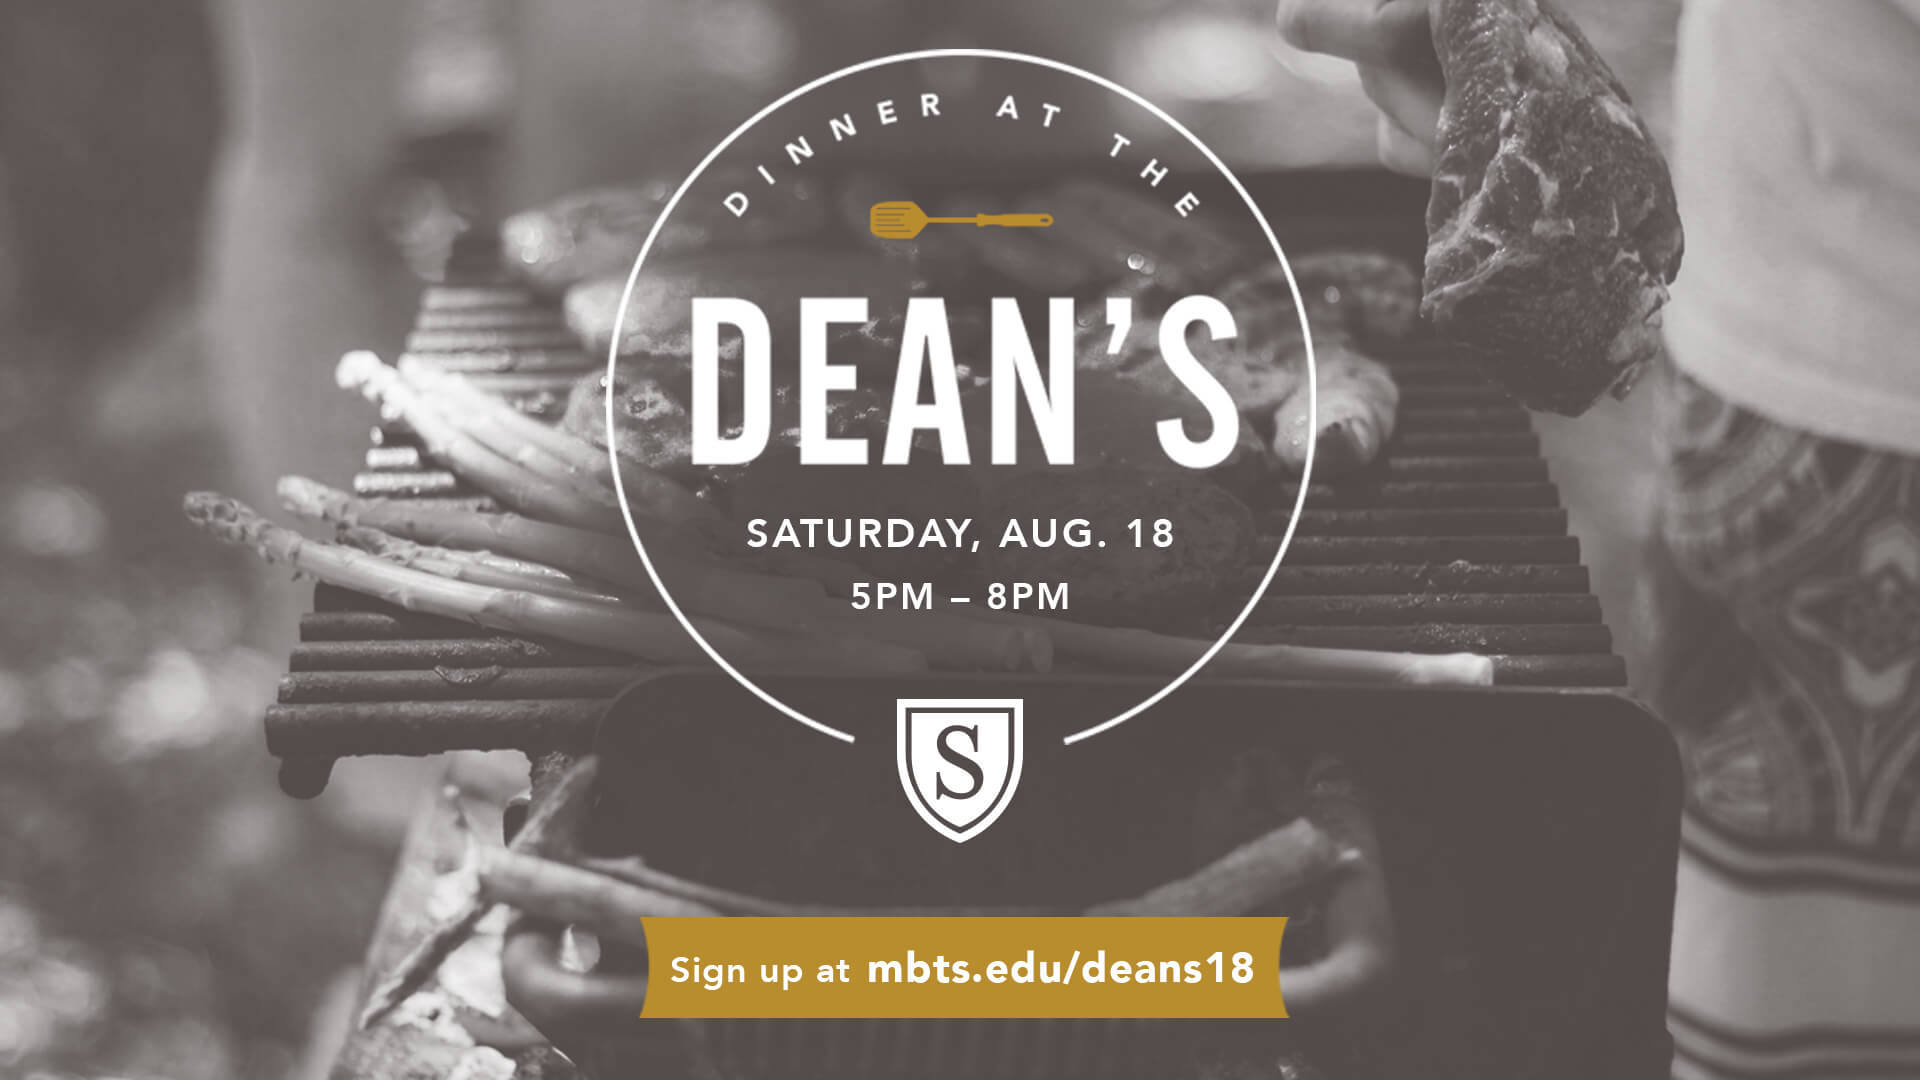 Dinner at the Dean's - Aug. 18